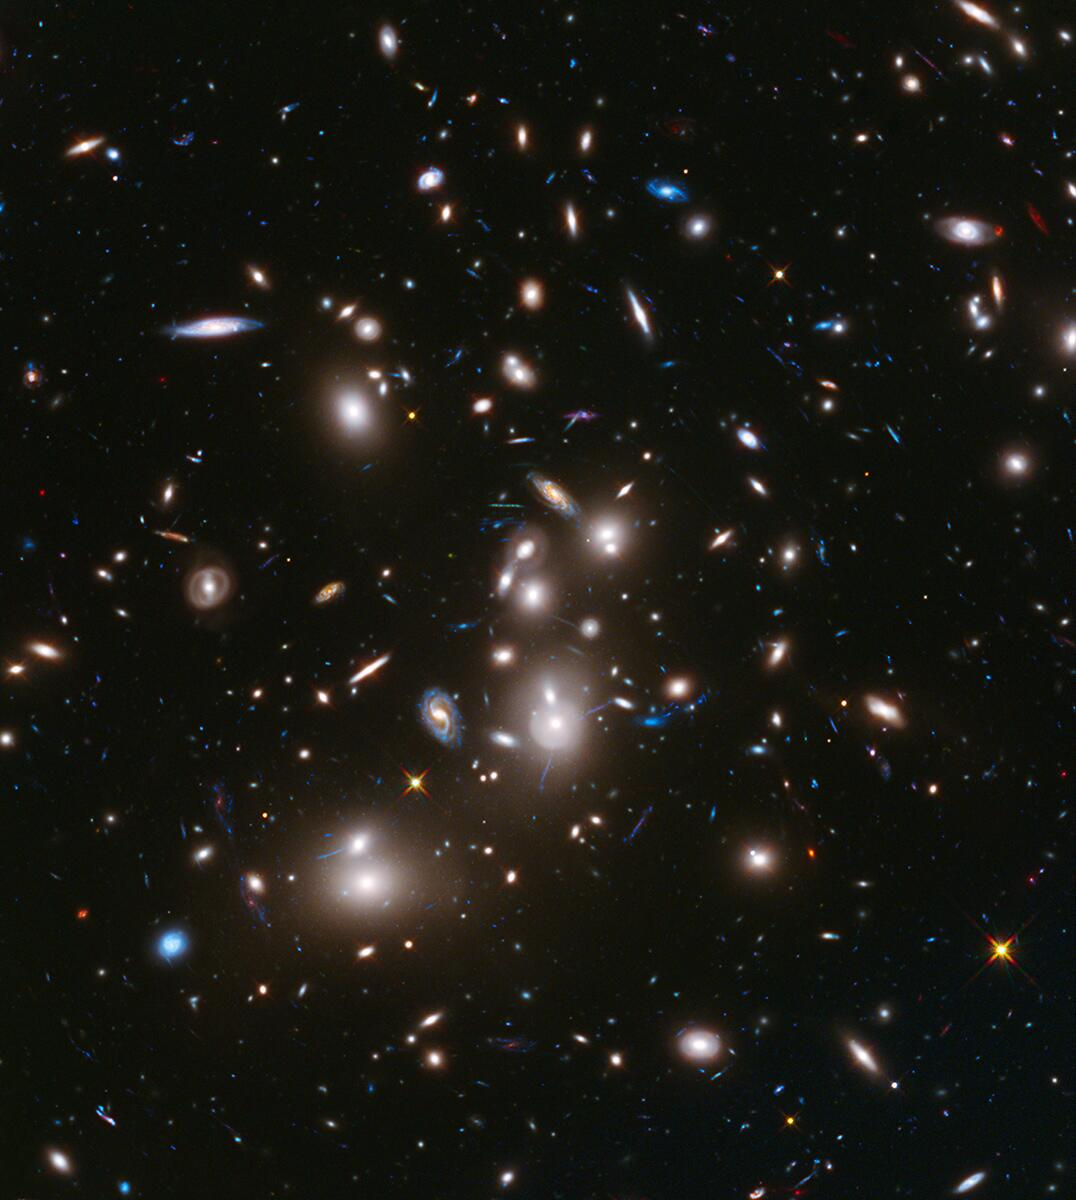 RT @NASA: This @NASA_Hubble image of a galaxy cluster shows some of the faintest & youngest galaxies ever detected. #AAS223 http://t.co/hnXExGpTeg